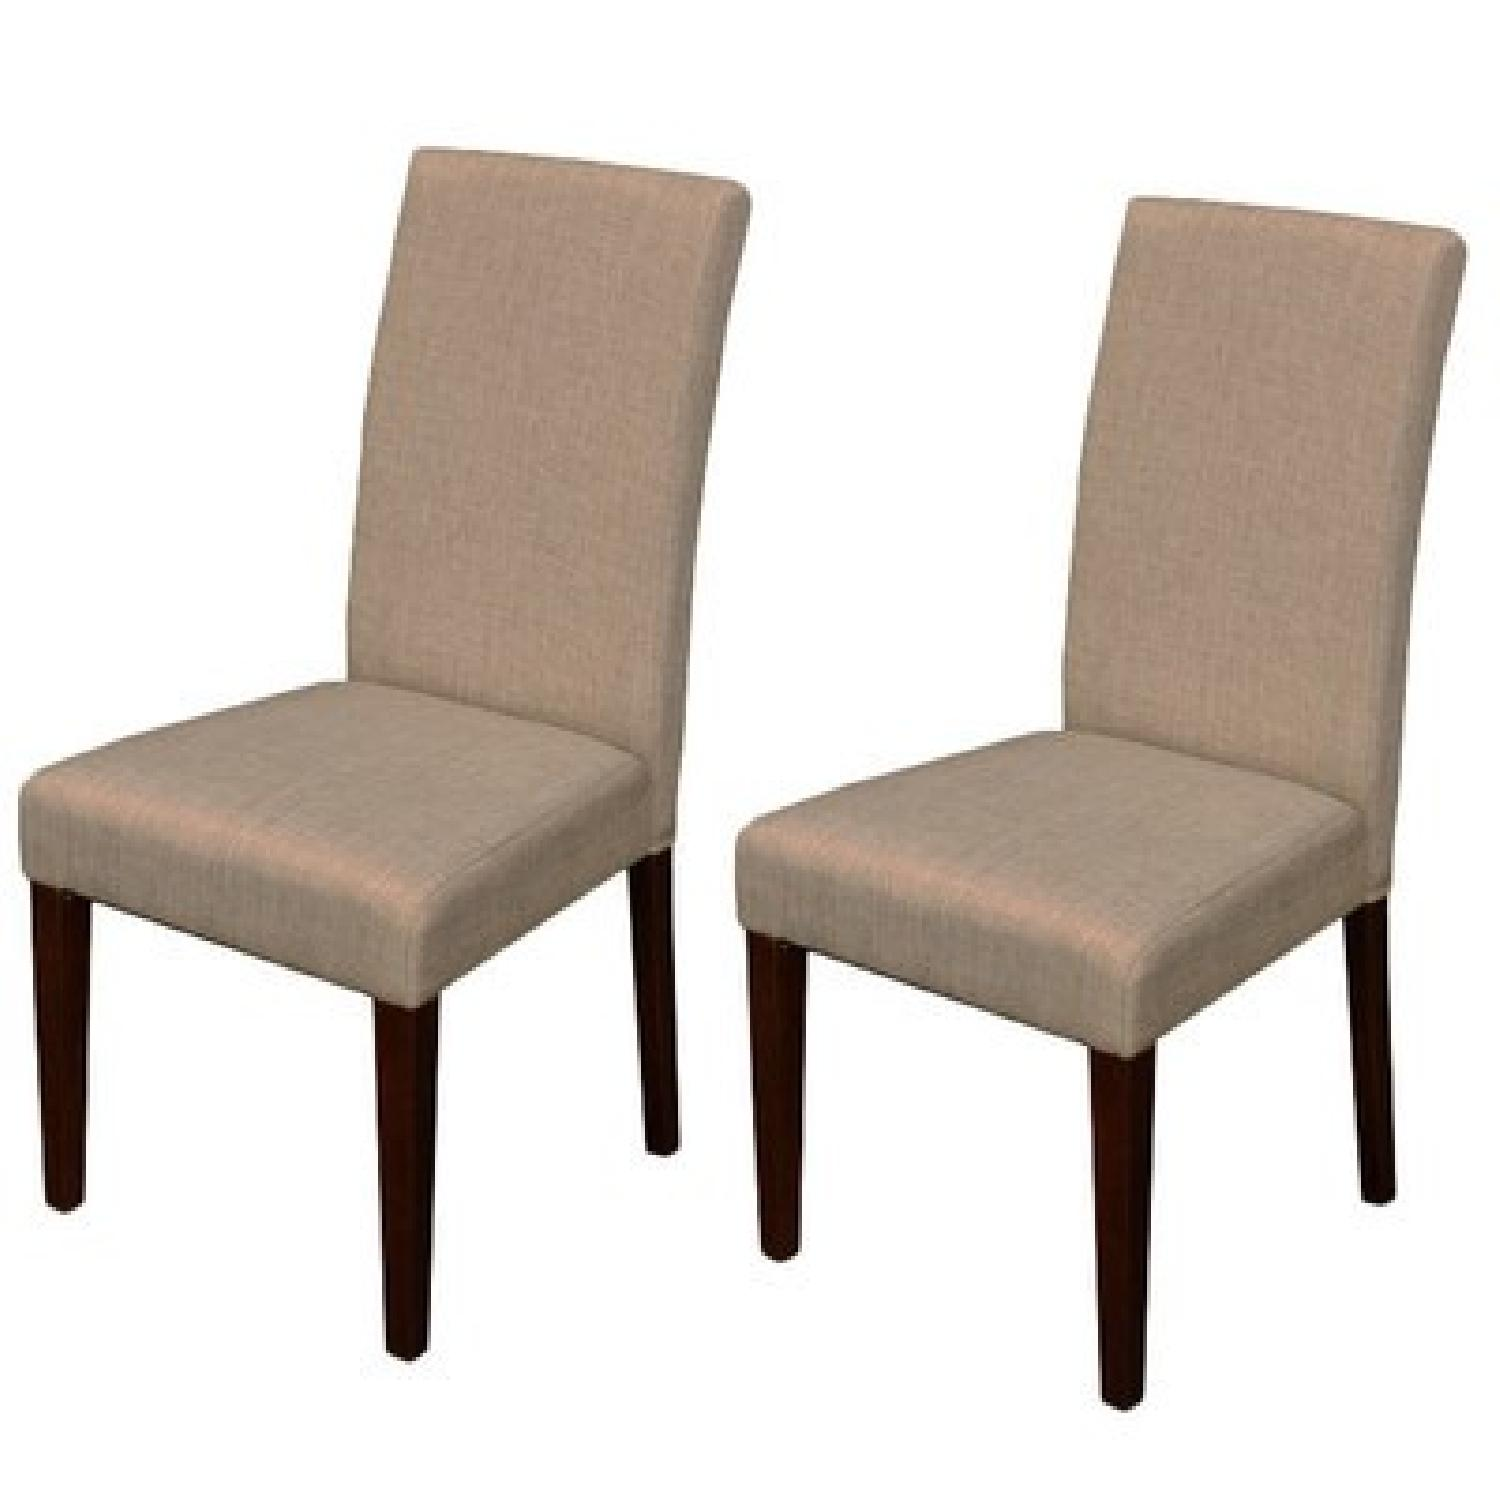 Monsoon Pacific Beige High-Backed Dining Chairs - image-3